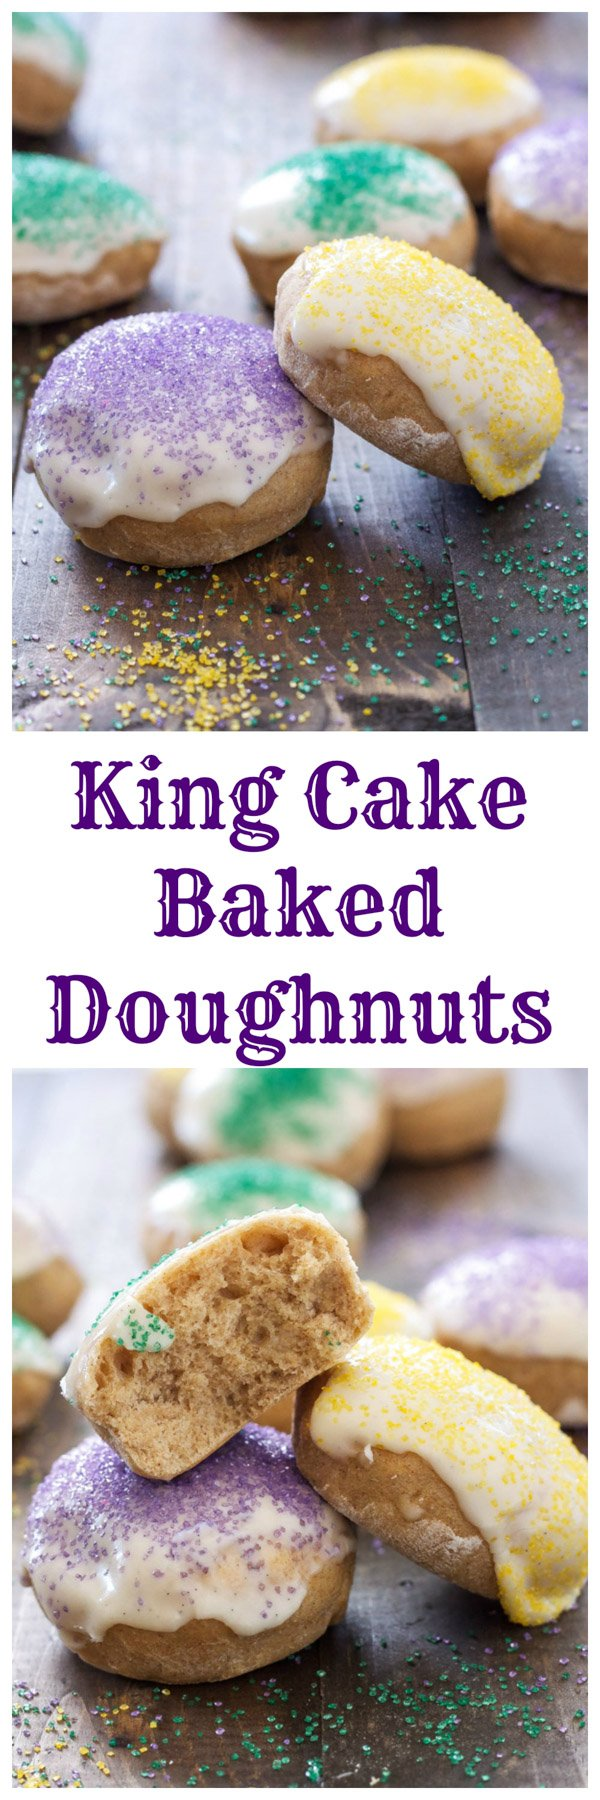 King Cake Baked Doughnuts | Doughnuts that taste like the traditional Mardi Gras King Cake! | @reciperunner